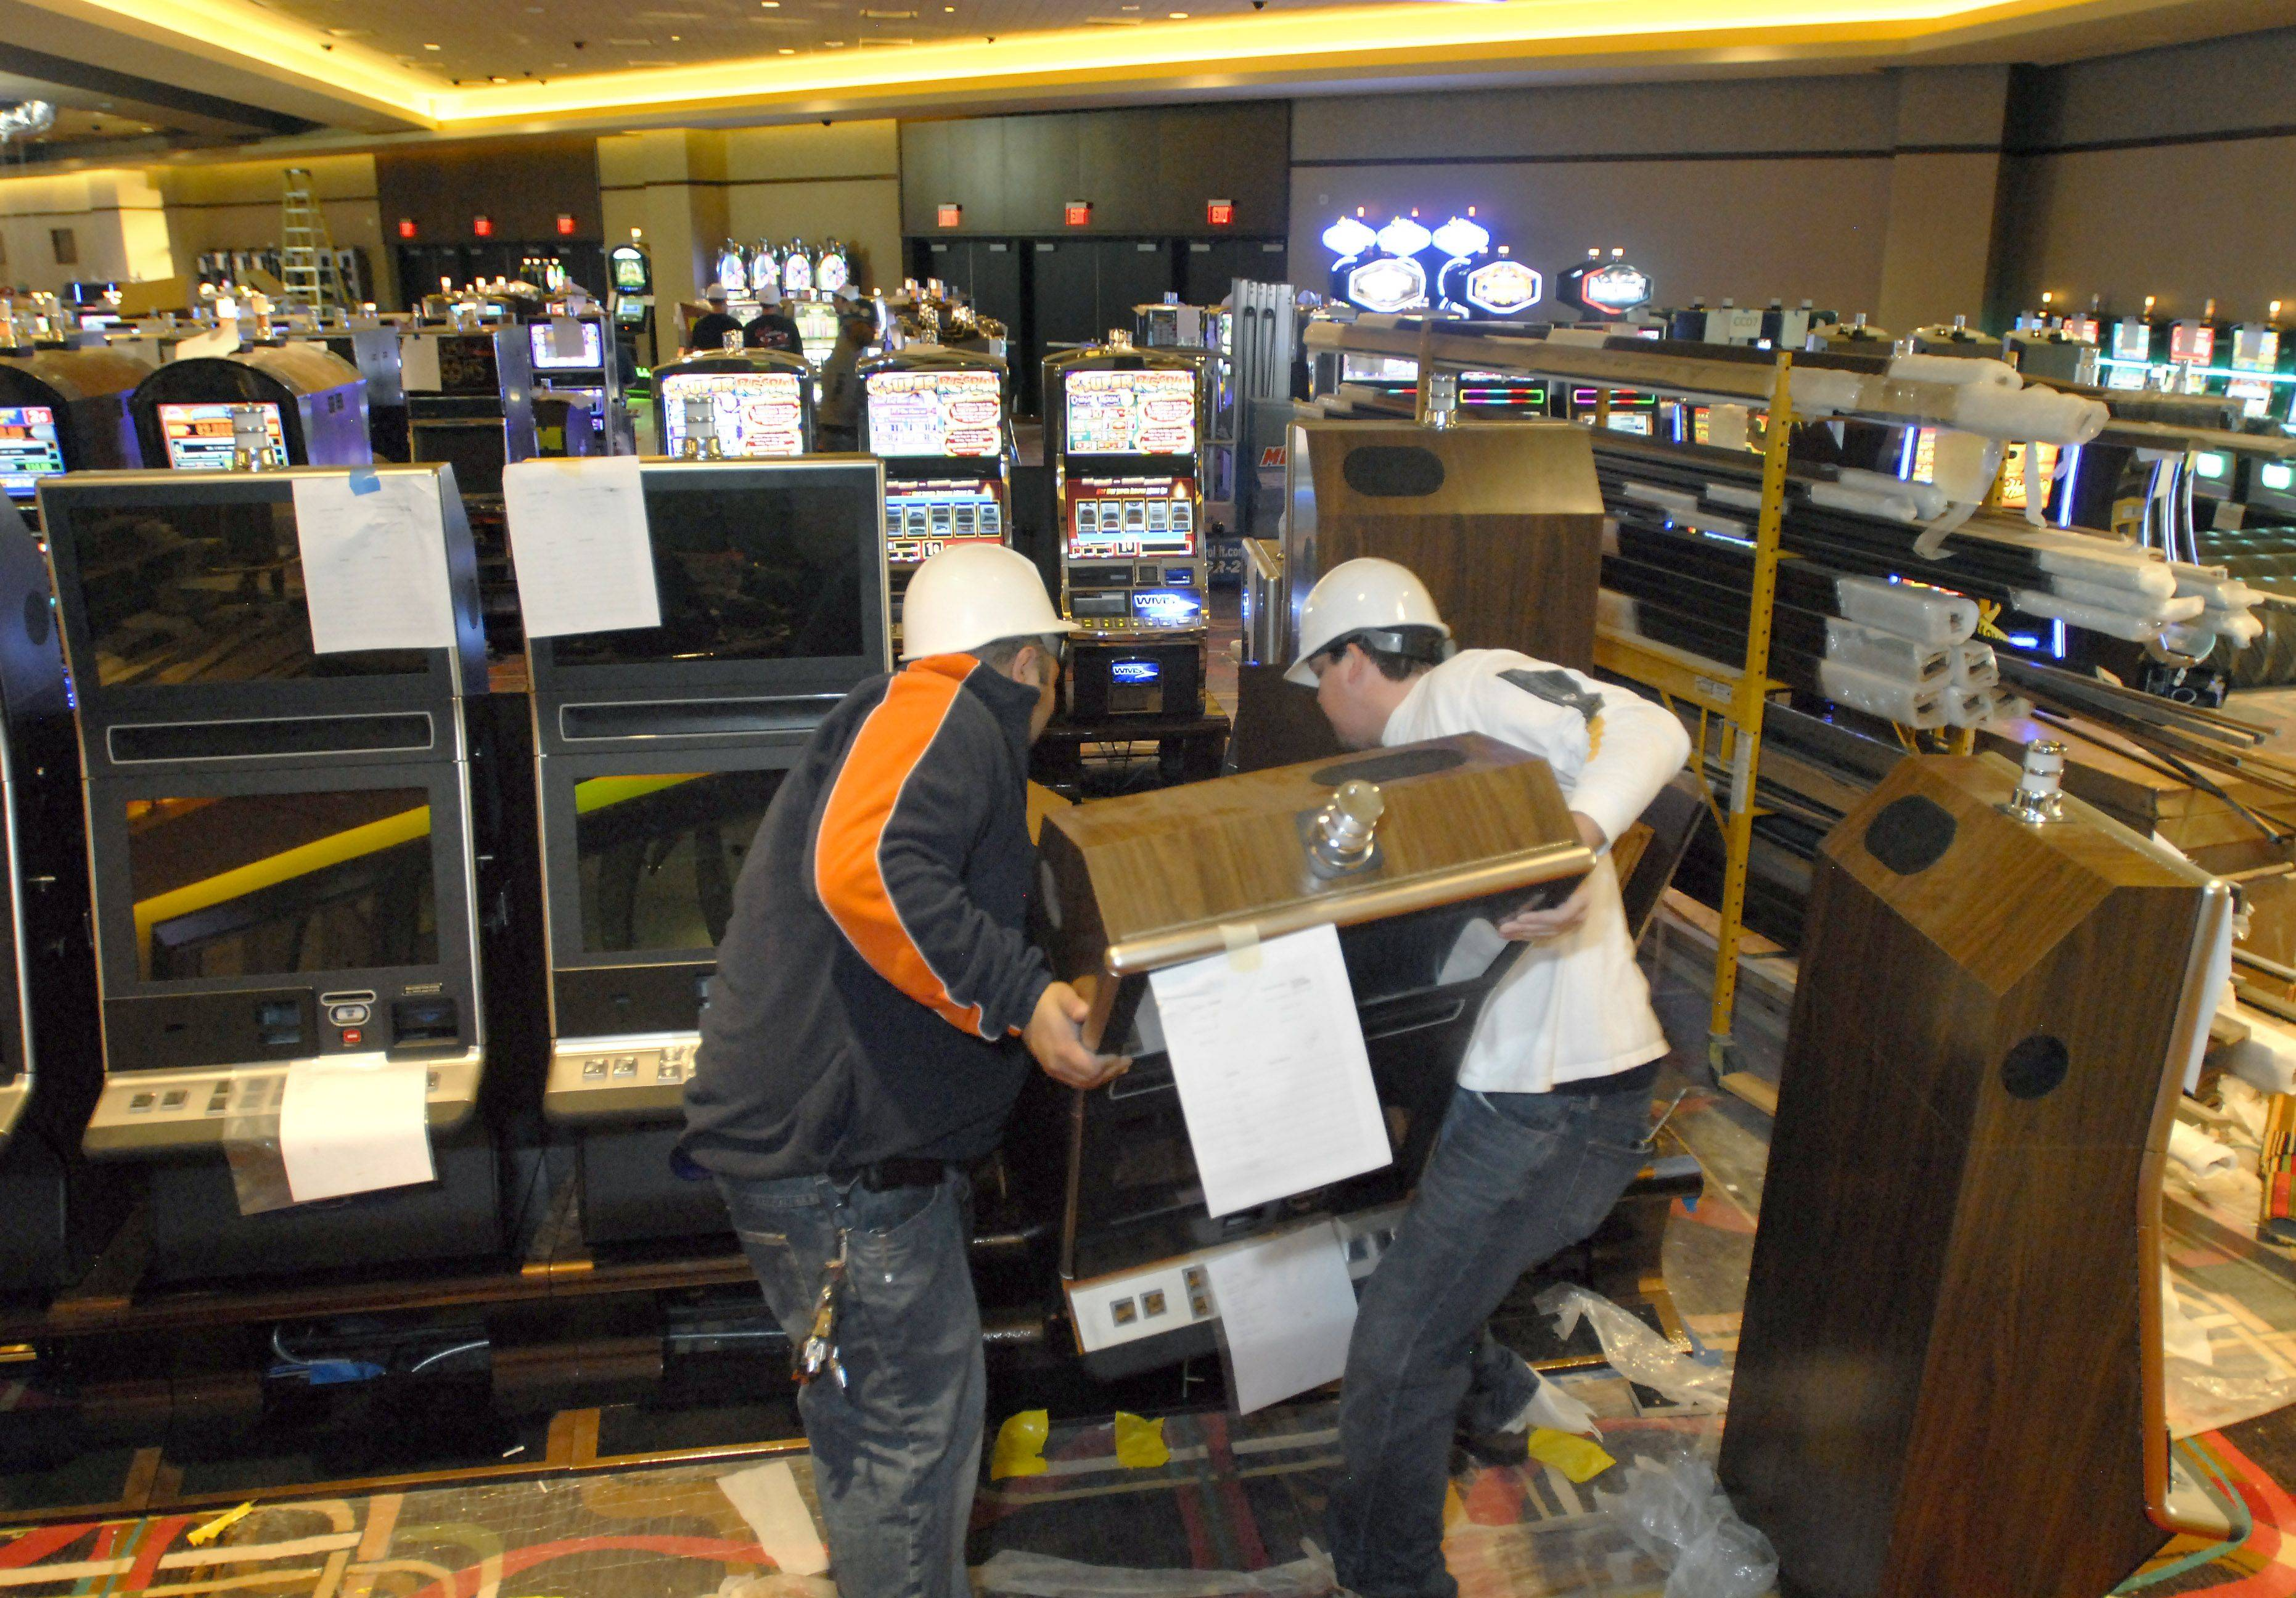 Workers are installing some of the 1,000-plus slot machines at the new Rivers Casino opening next month in Des Plaines. In addition to the slots, there will be 30 to 40 gaming tables.